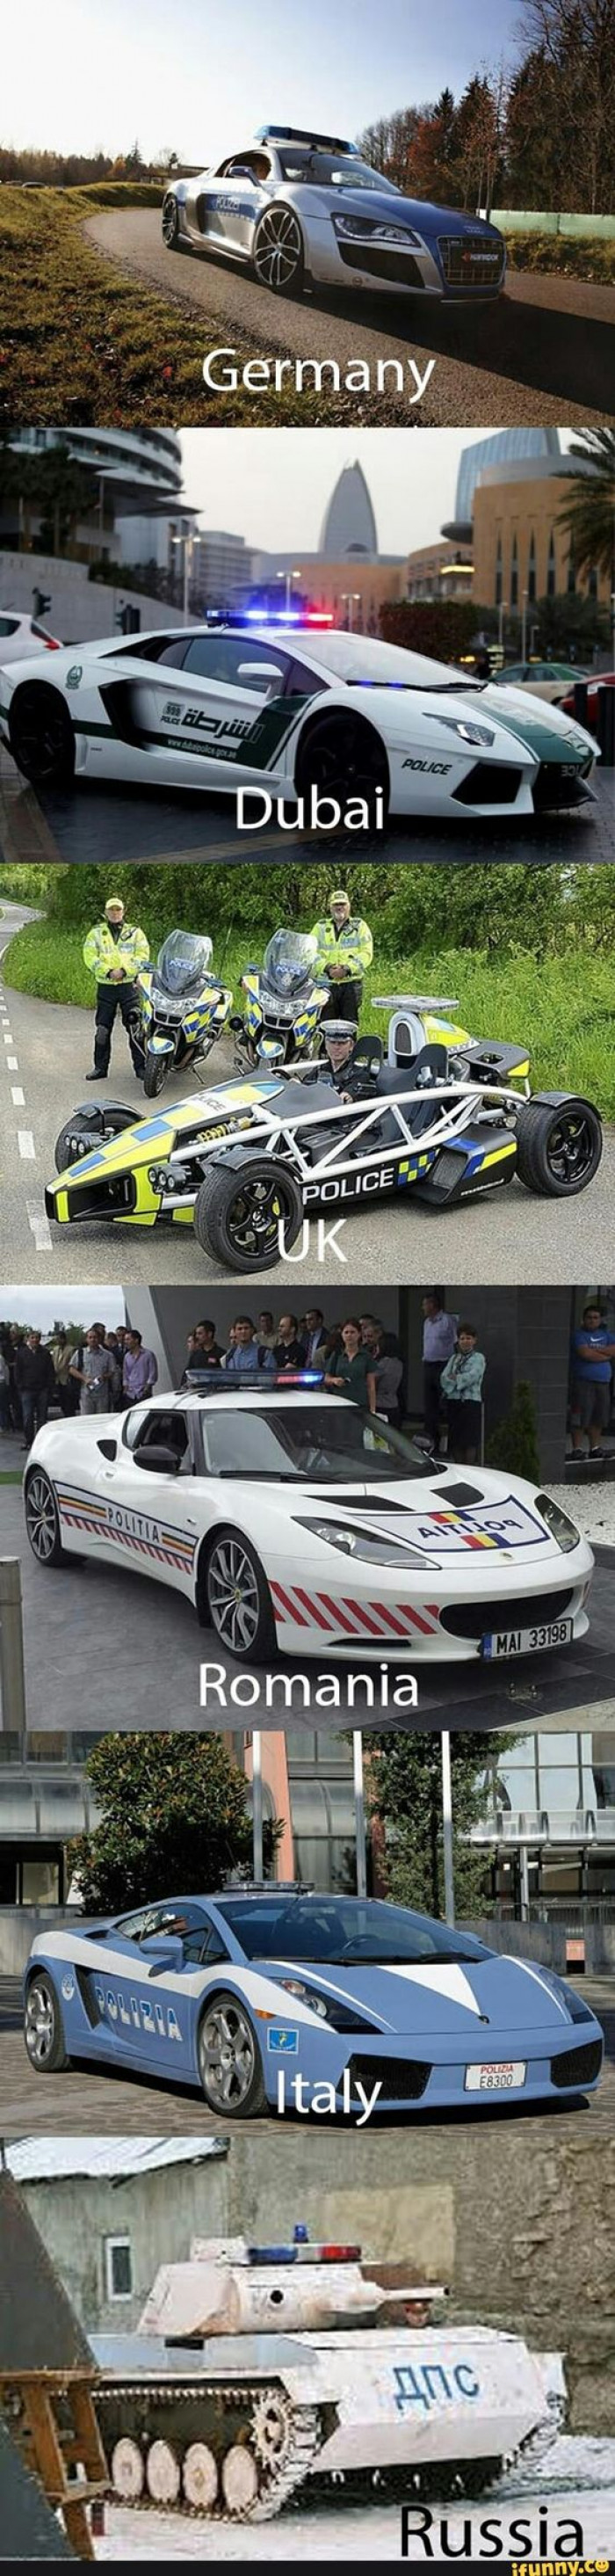 How Police Cars Look In Different Countries